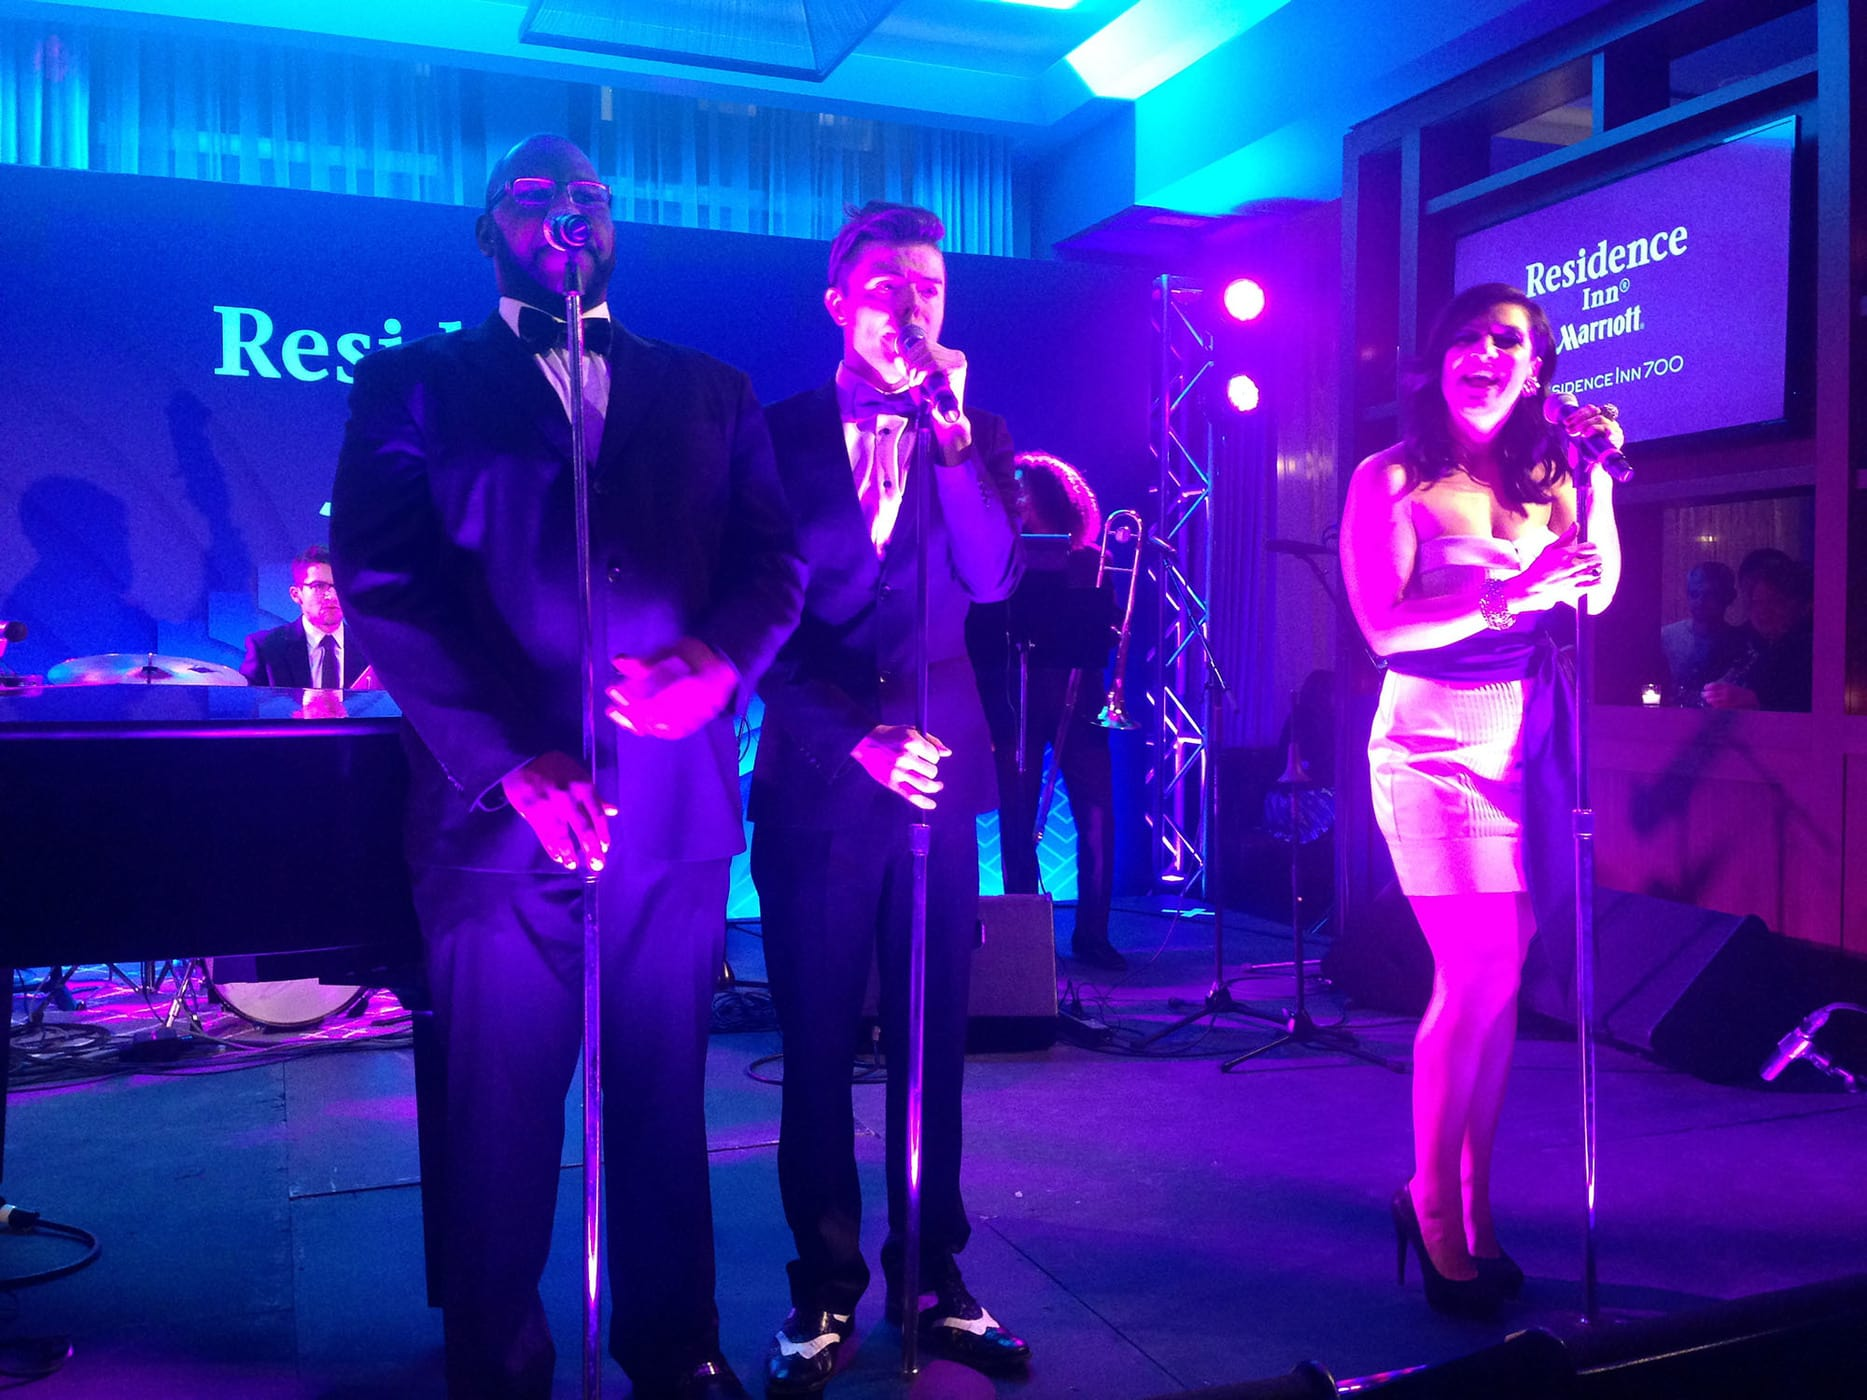 Postmodern Jukebox at the Marriot Residence Inn grand opening in Chicago